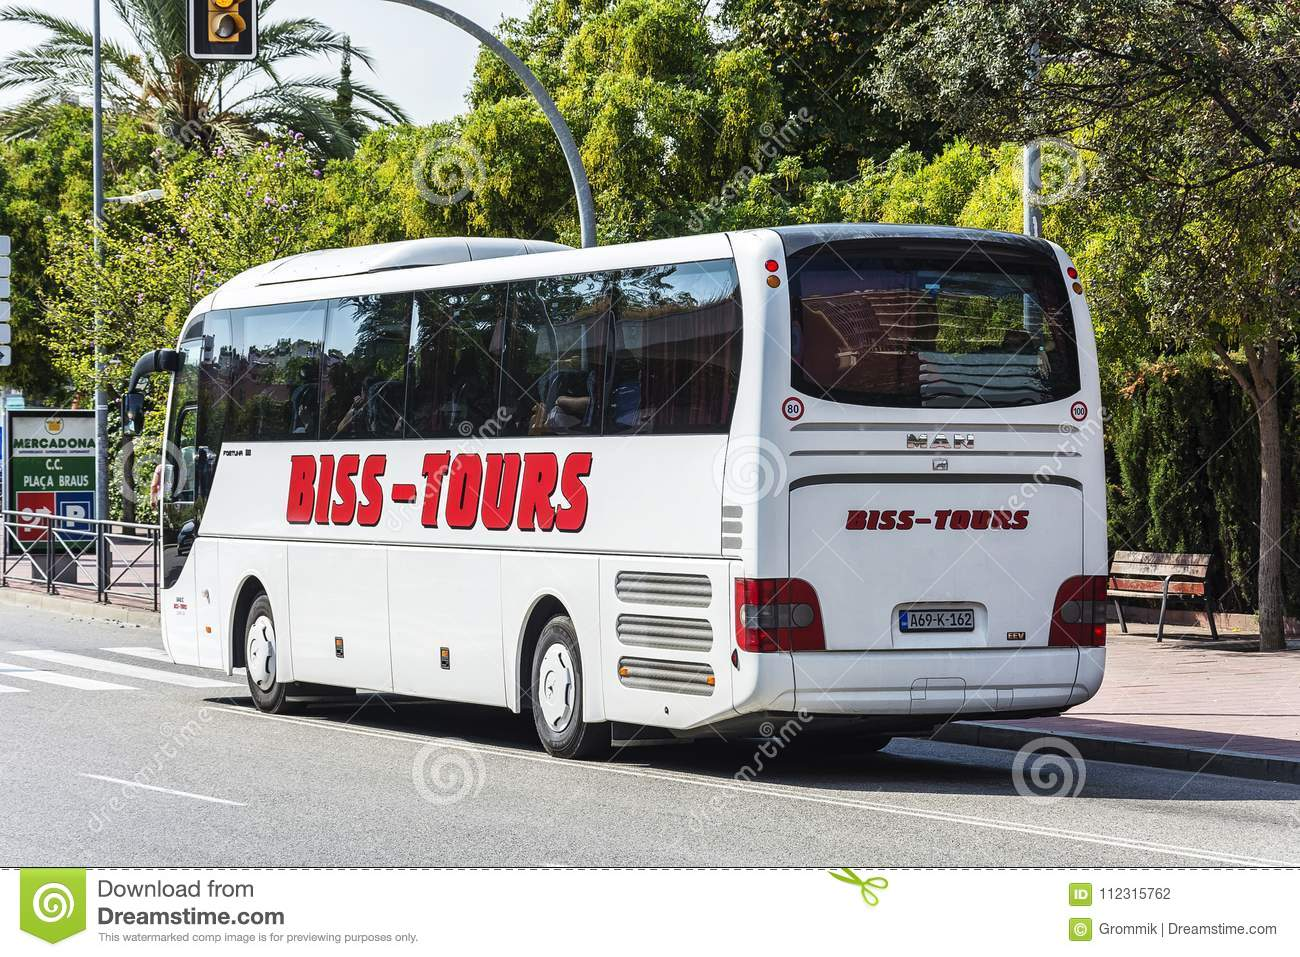 Bus Travel Companies BISS TOURS On The Streets Of The City Llor